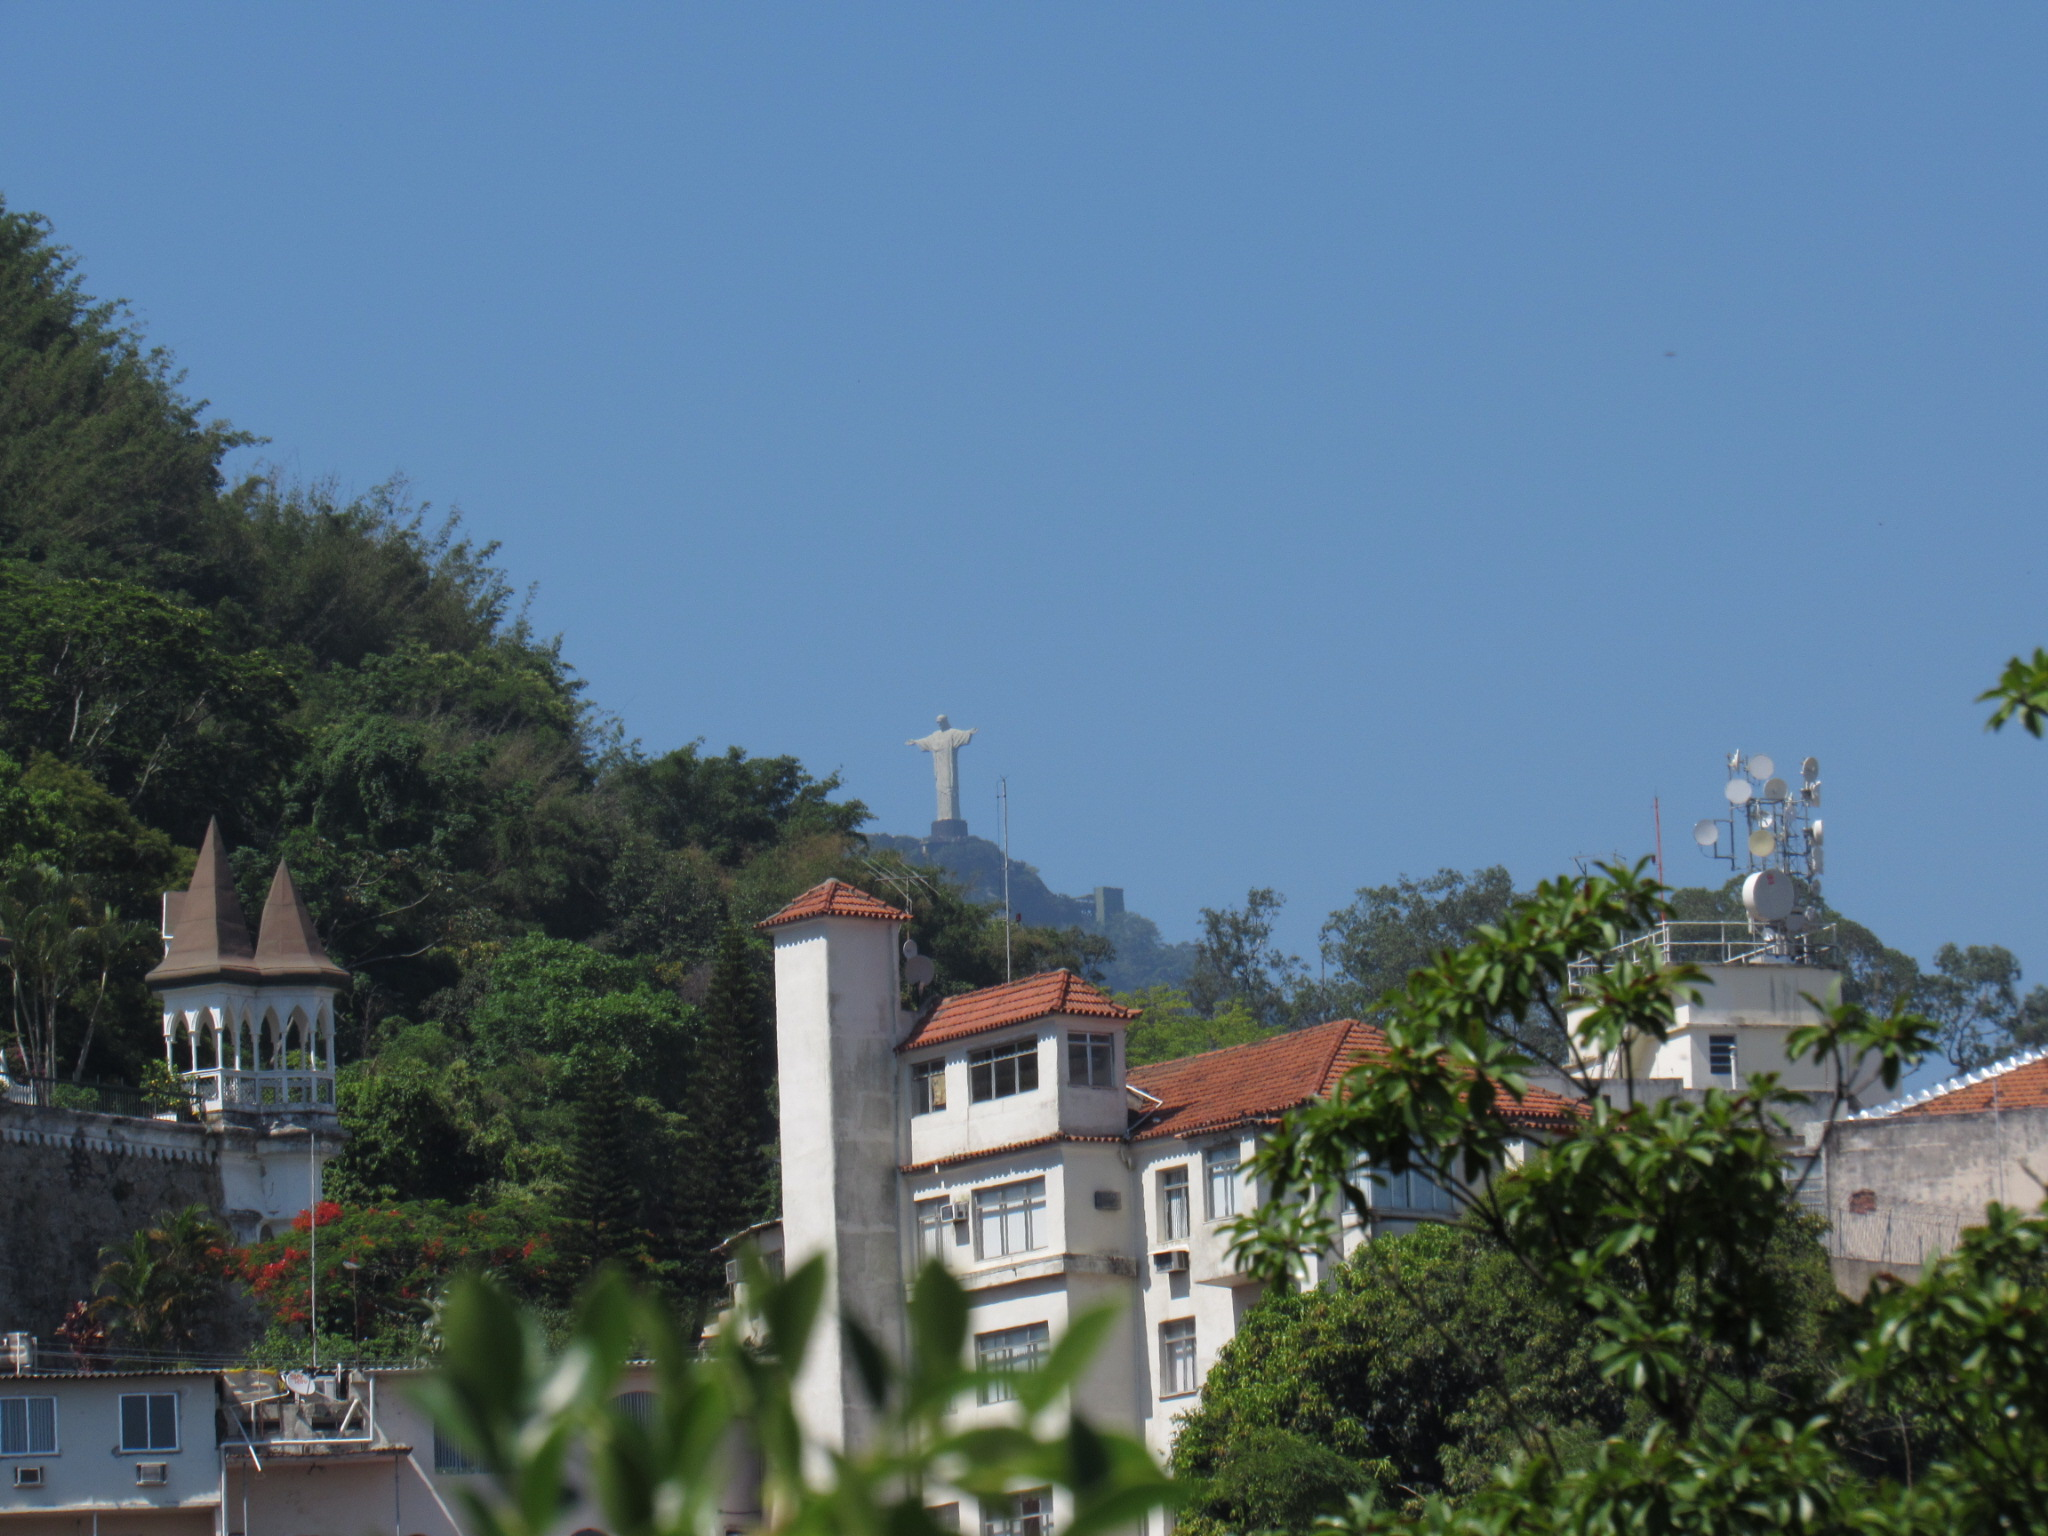 View of Cristo Redentor (Christ the Redeemer) from the colonial town of Santa Teresa